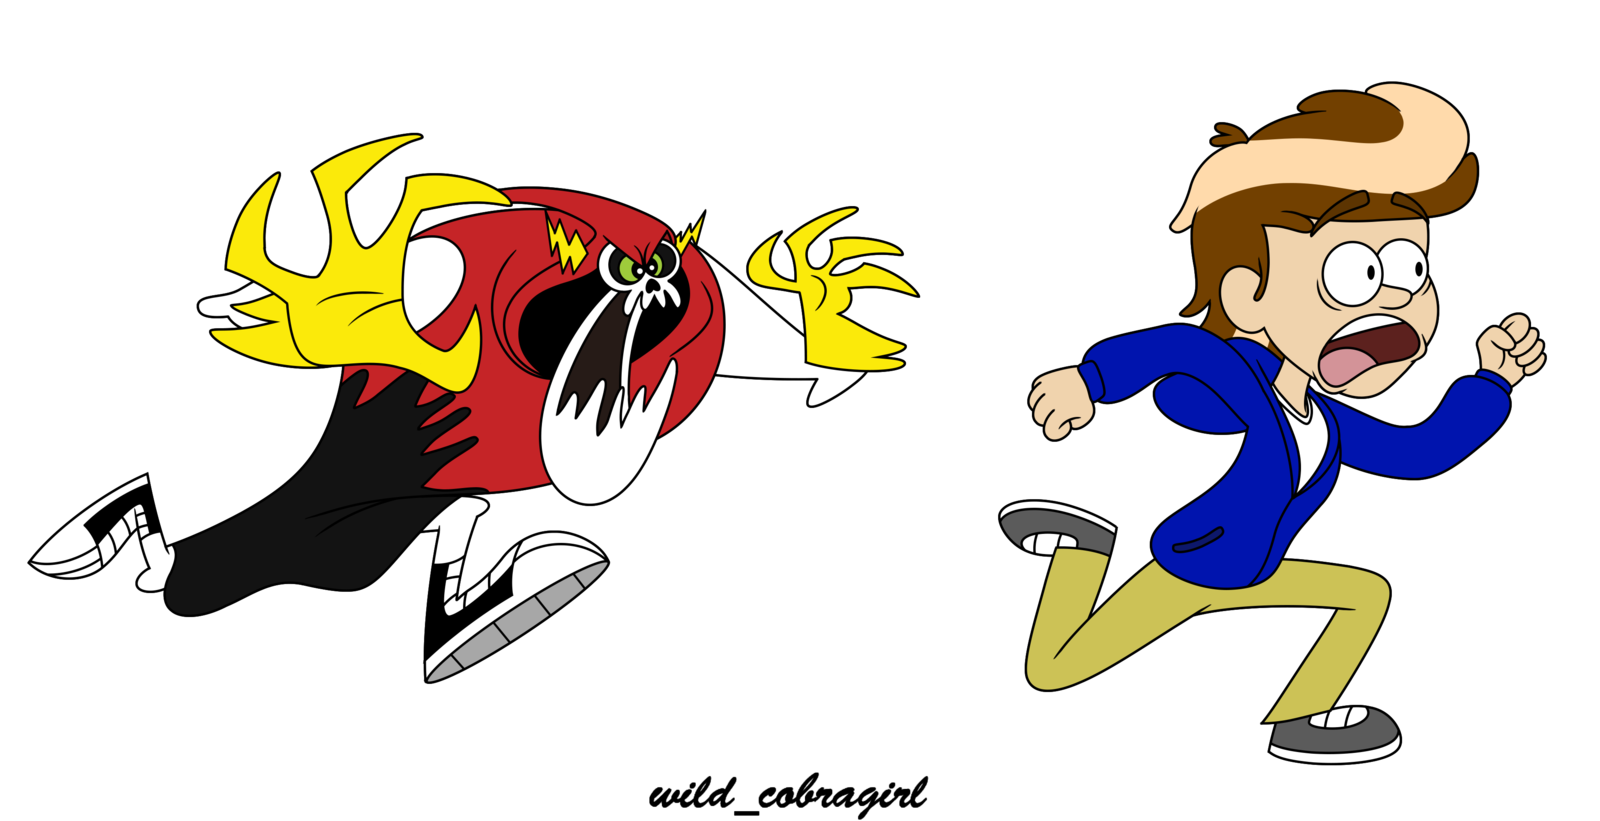 Life clipart animated. Run for your by